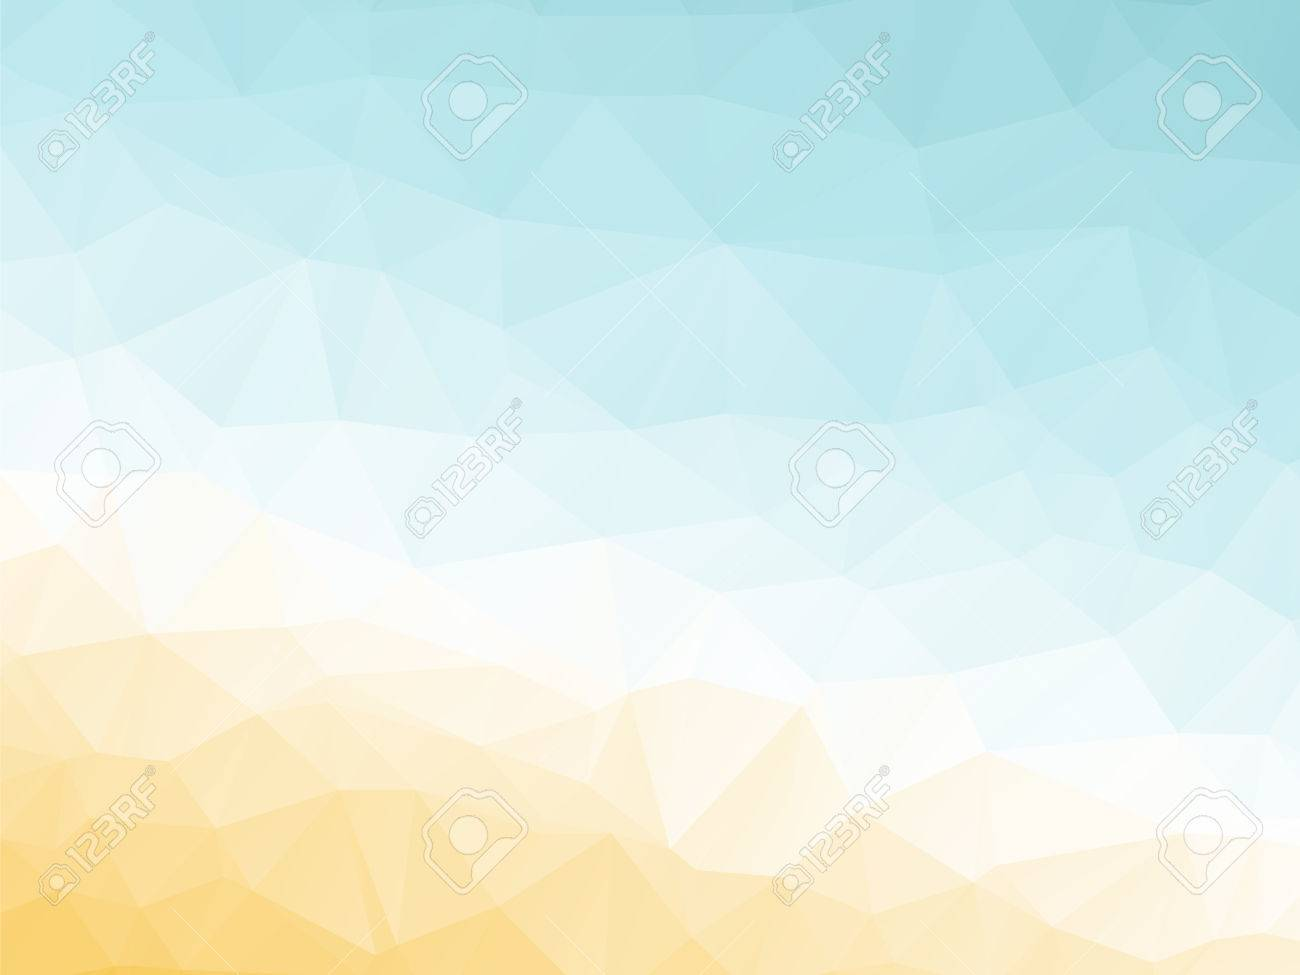 abstract triangular yellow white orange summer background royalty